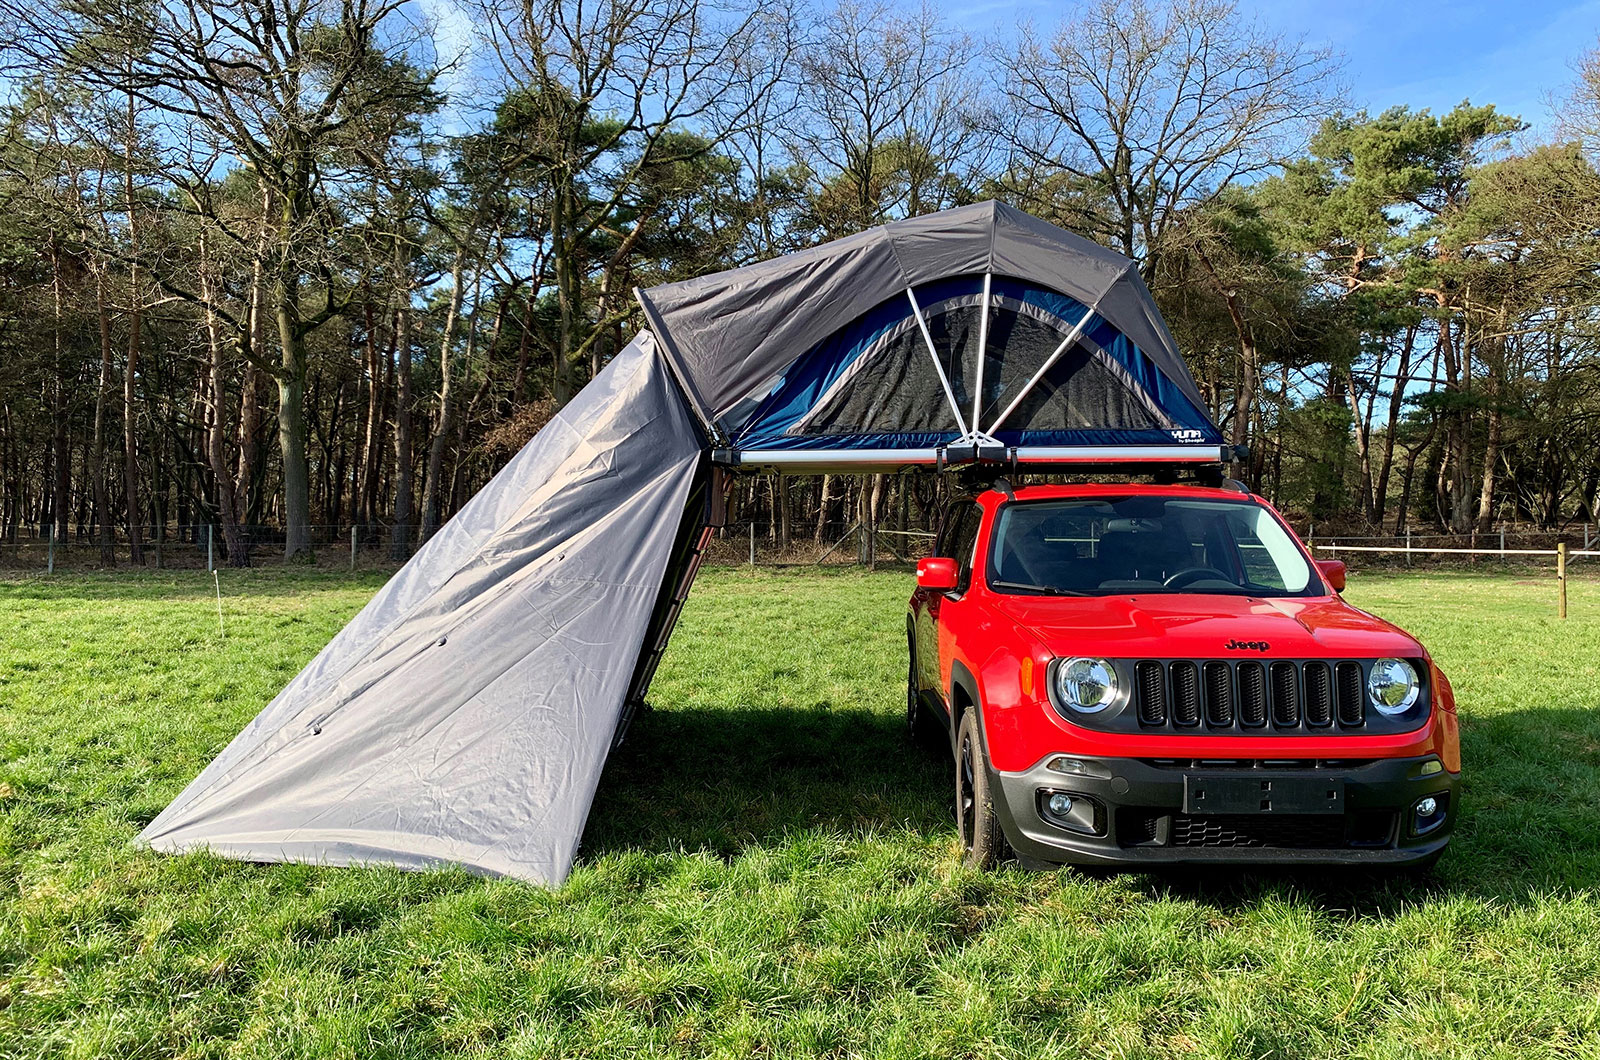 Sheepie Yuna side tent